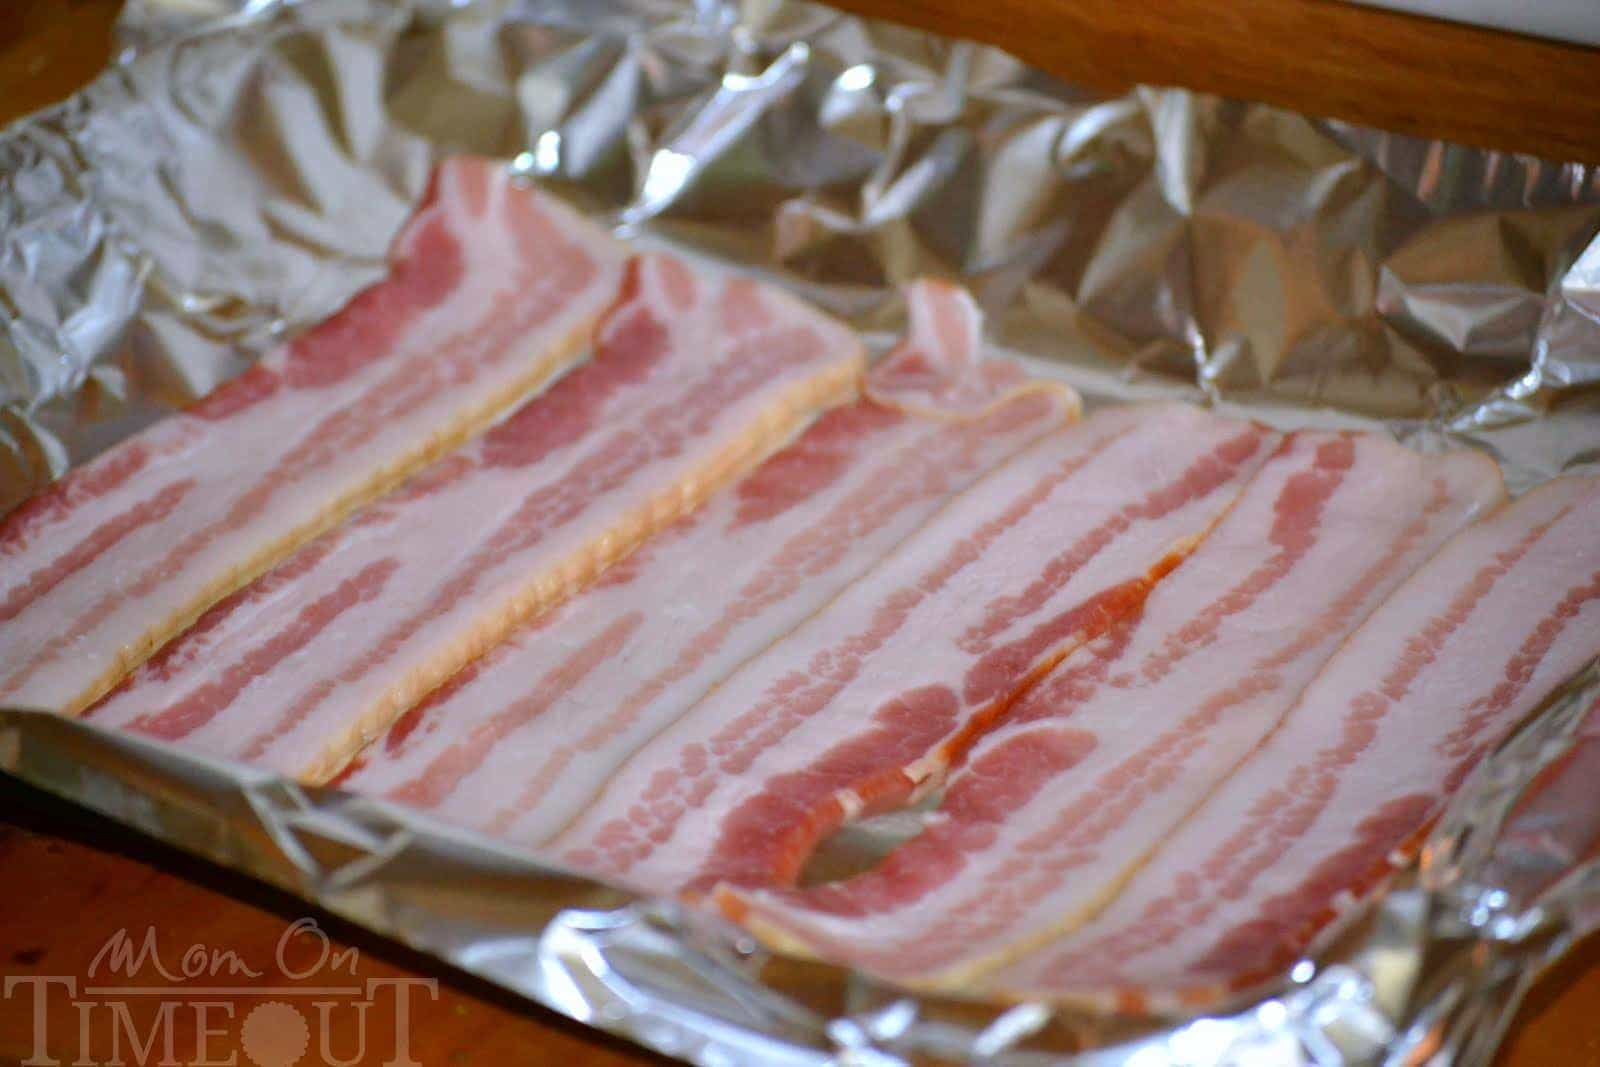 Baking Bacon Laid Out On Foil